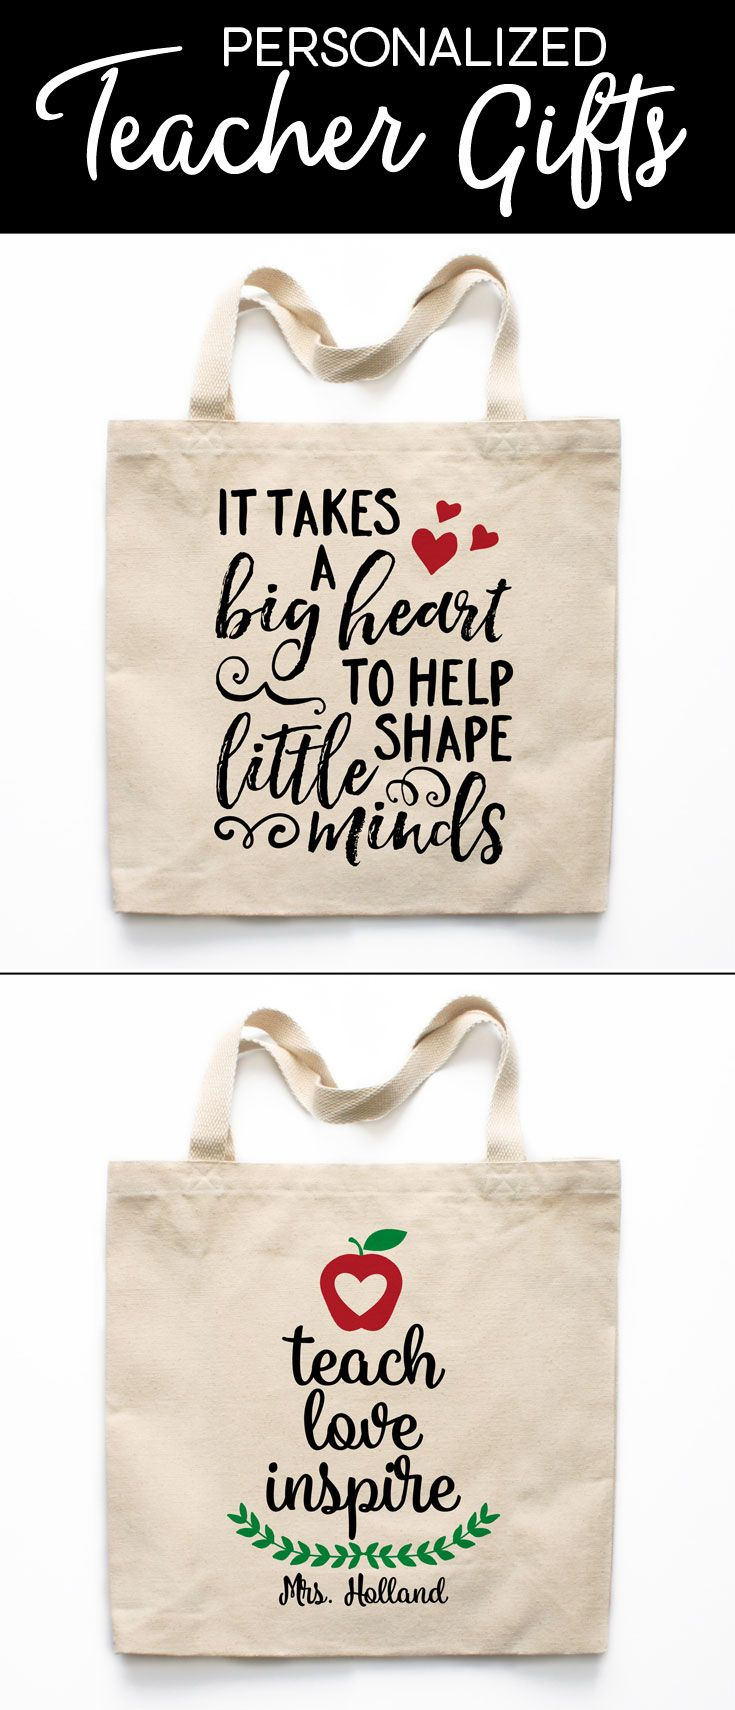 Personalized Teacher Gifts from Heart & Willow - Teacher Gifts, Teacher Mugs, Teacher Tote Bags, Teacher Magnets